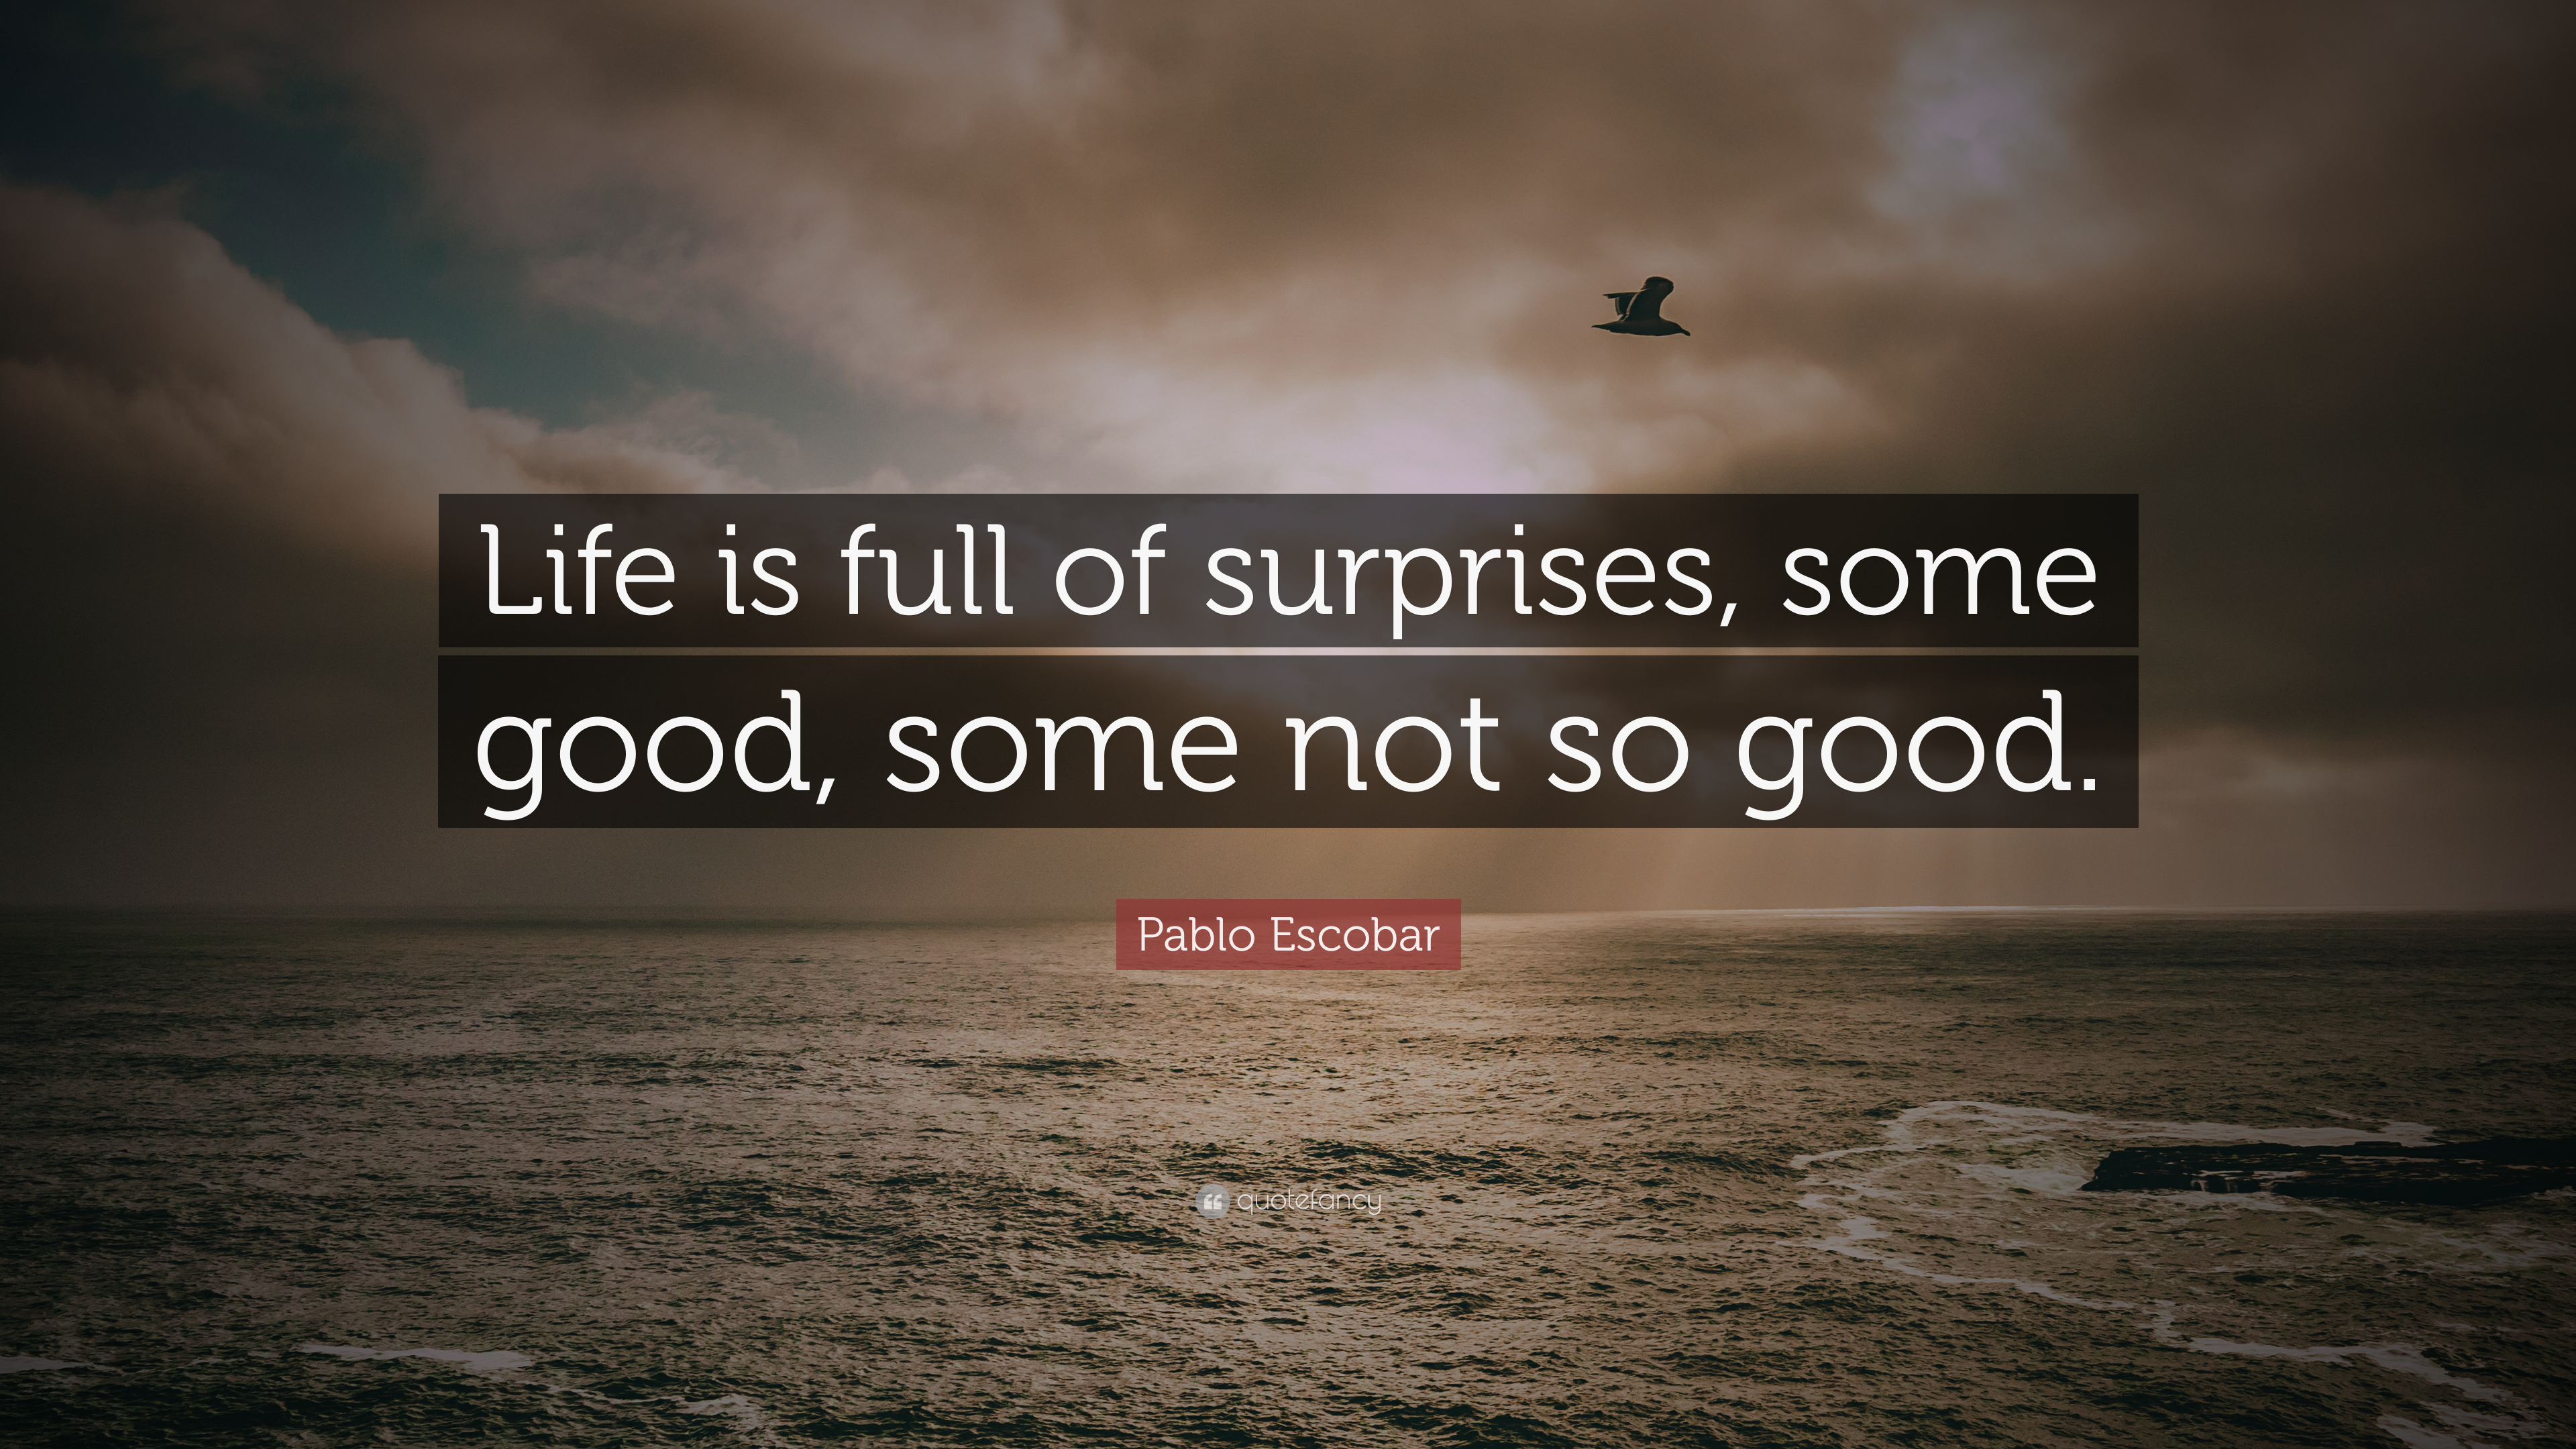 Pablo Escobar Quote: U201cLife Is Full Of Surprises, Some Good, Some Not